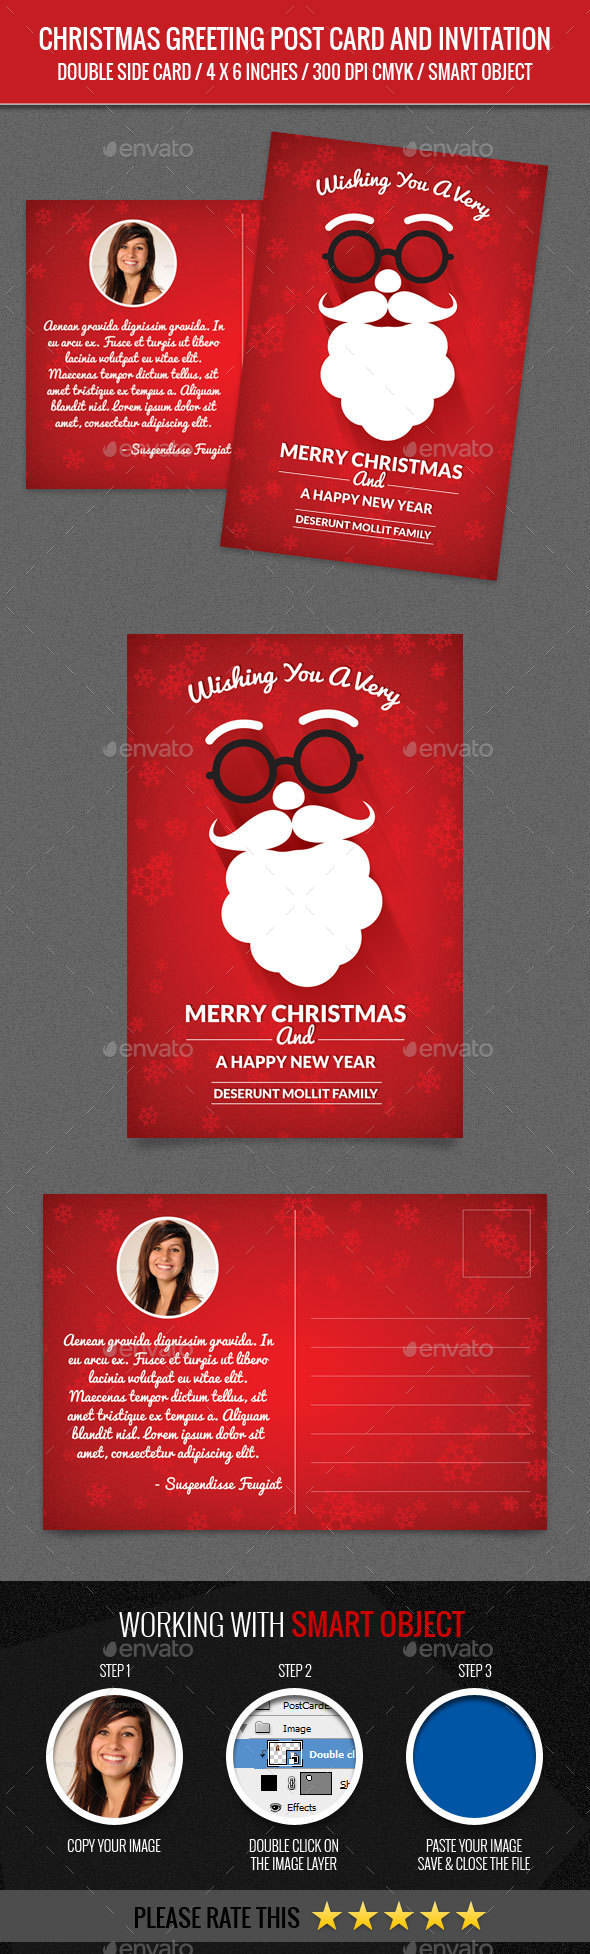 Christmas Greeting and New Year Post Card Template - Greeting Cards Cards & Invites